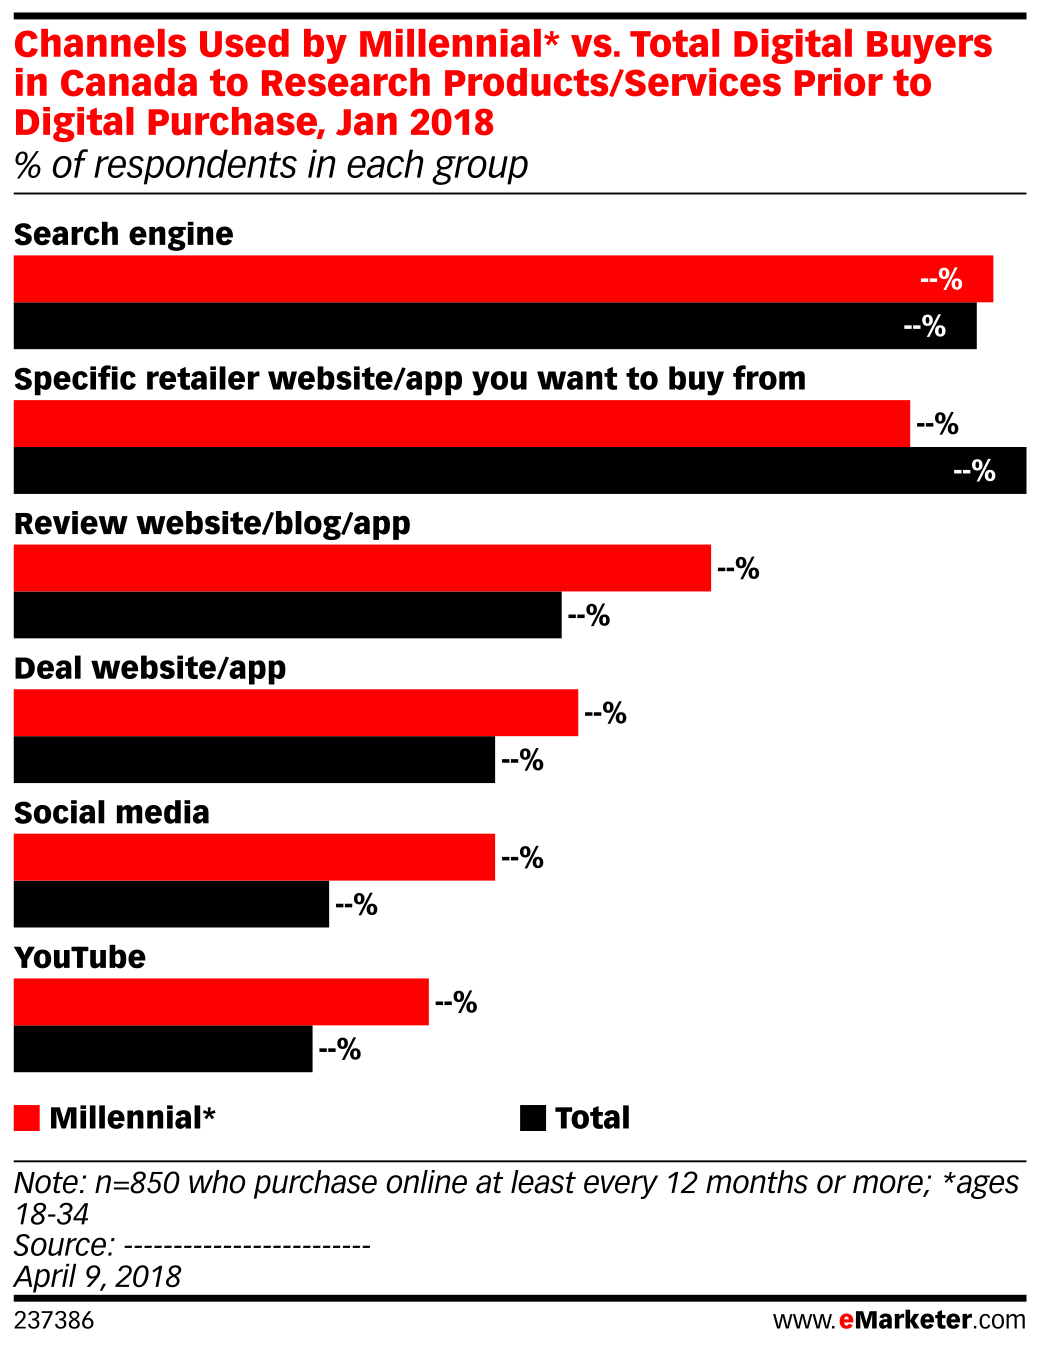 Channels Used by Millennial* vs. Total Digital Buyers in Canada to Research Products/Services Prior to Digital Purchase, Jan 2018 (% of respondents in each group)